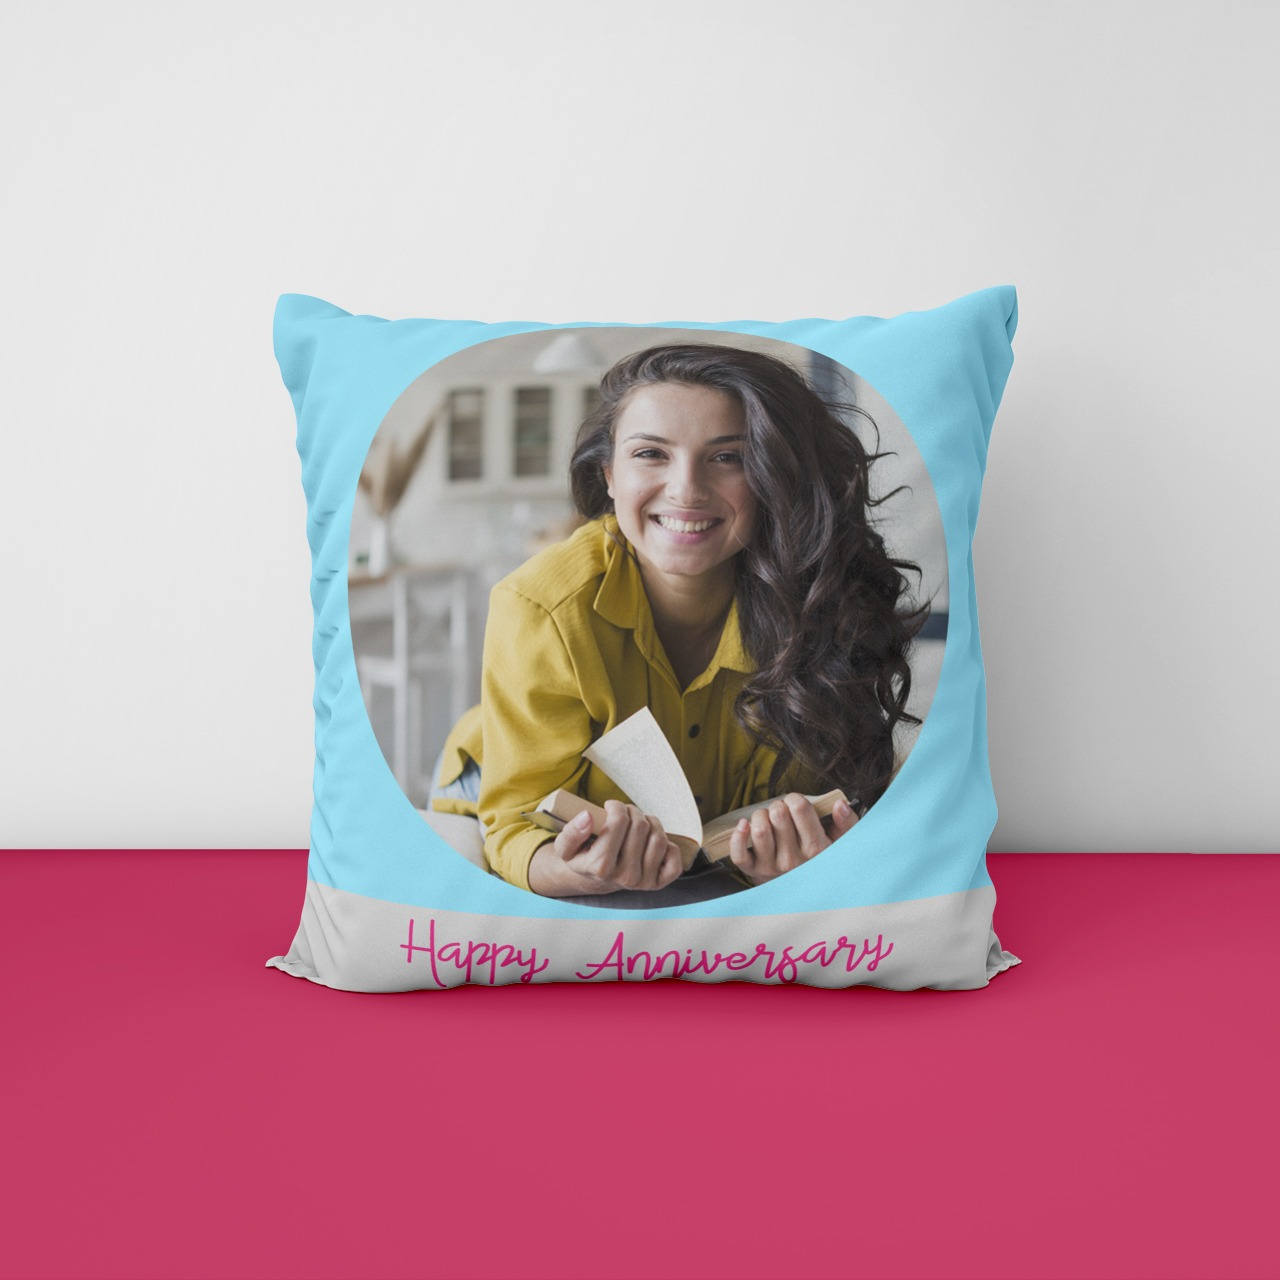 Happy Anniversary Personalized Photo Cushion